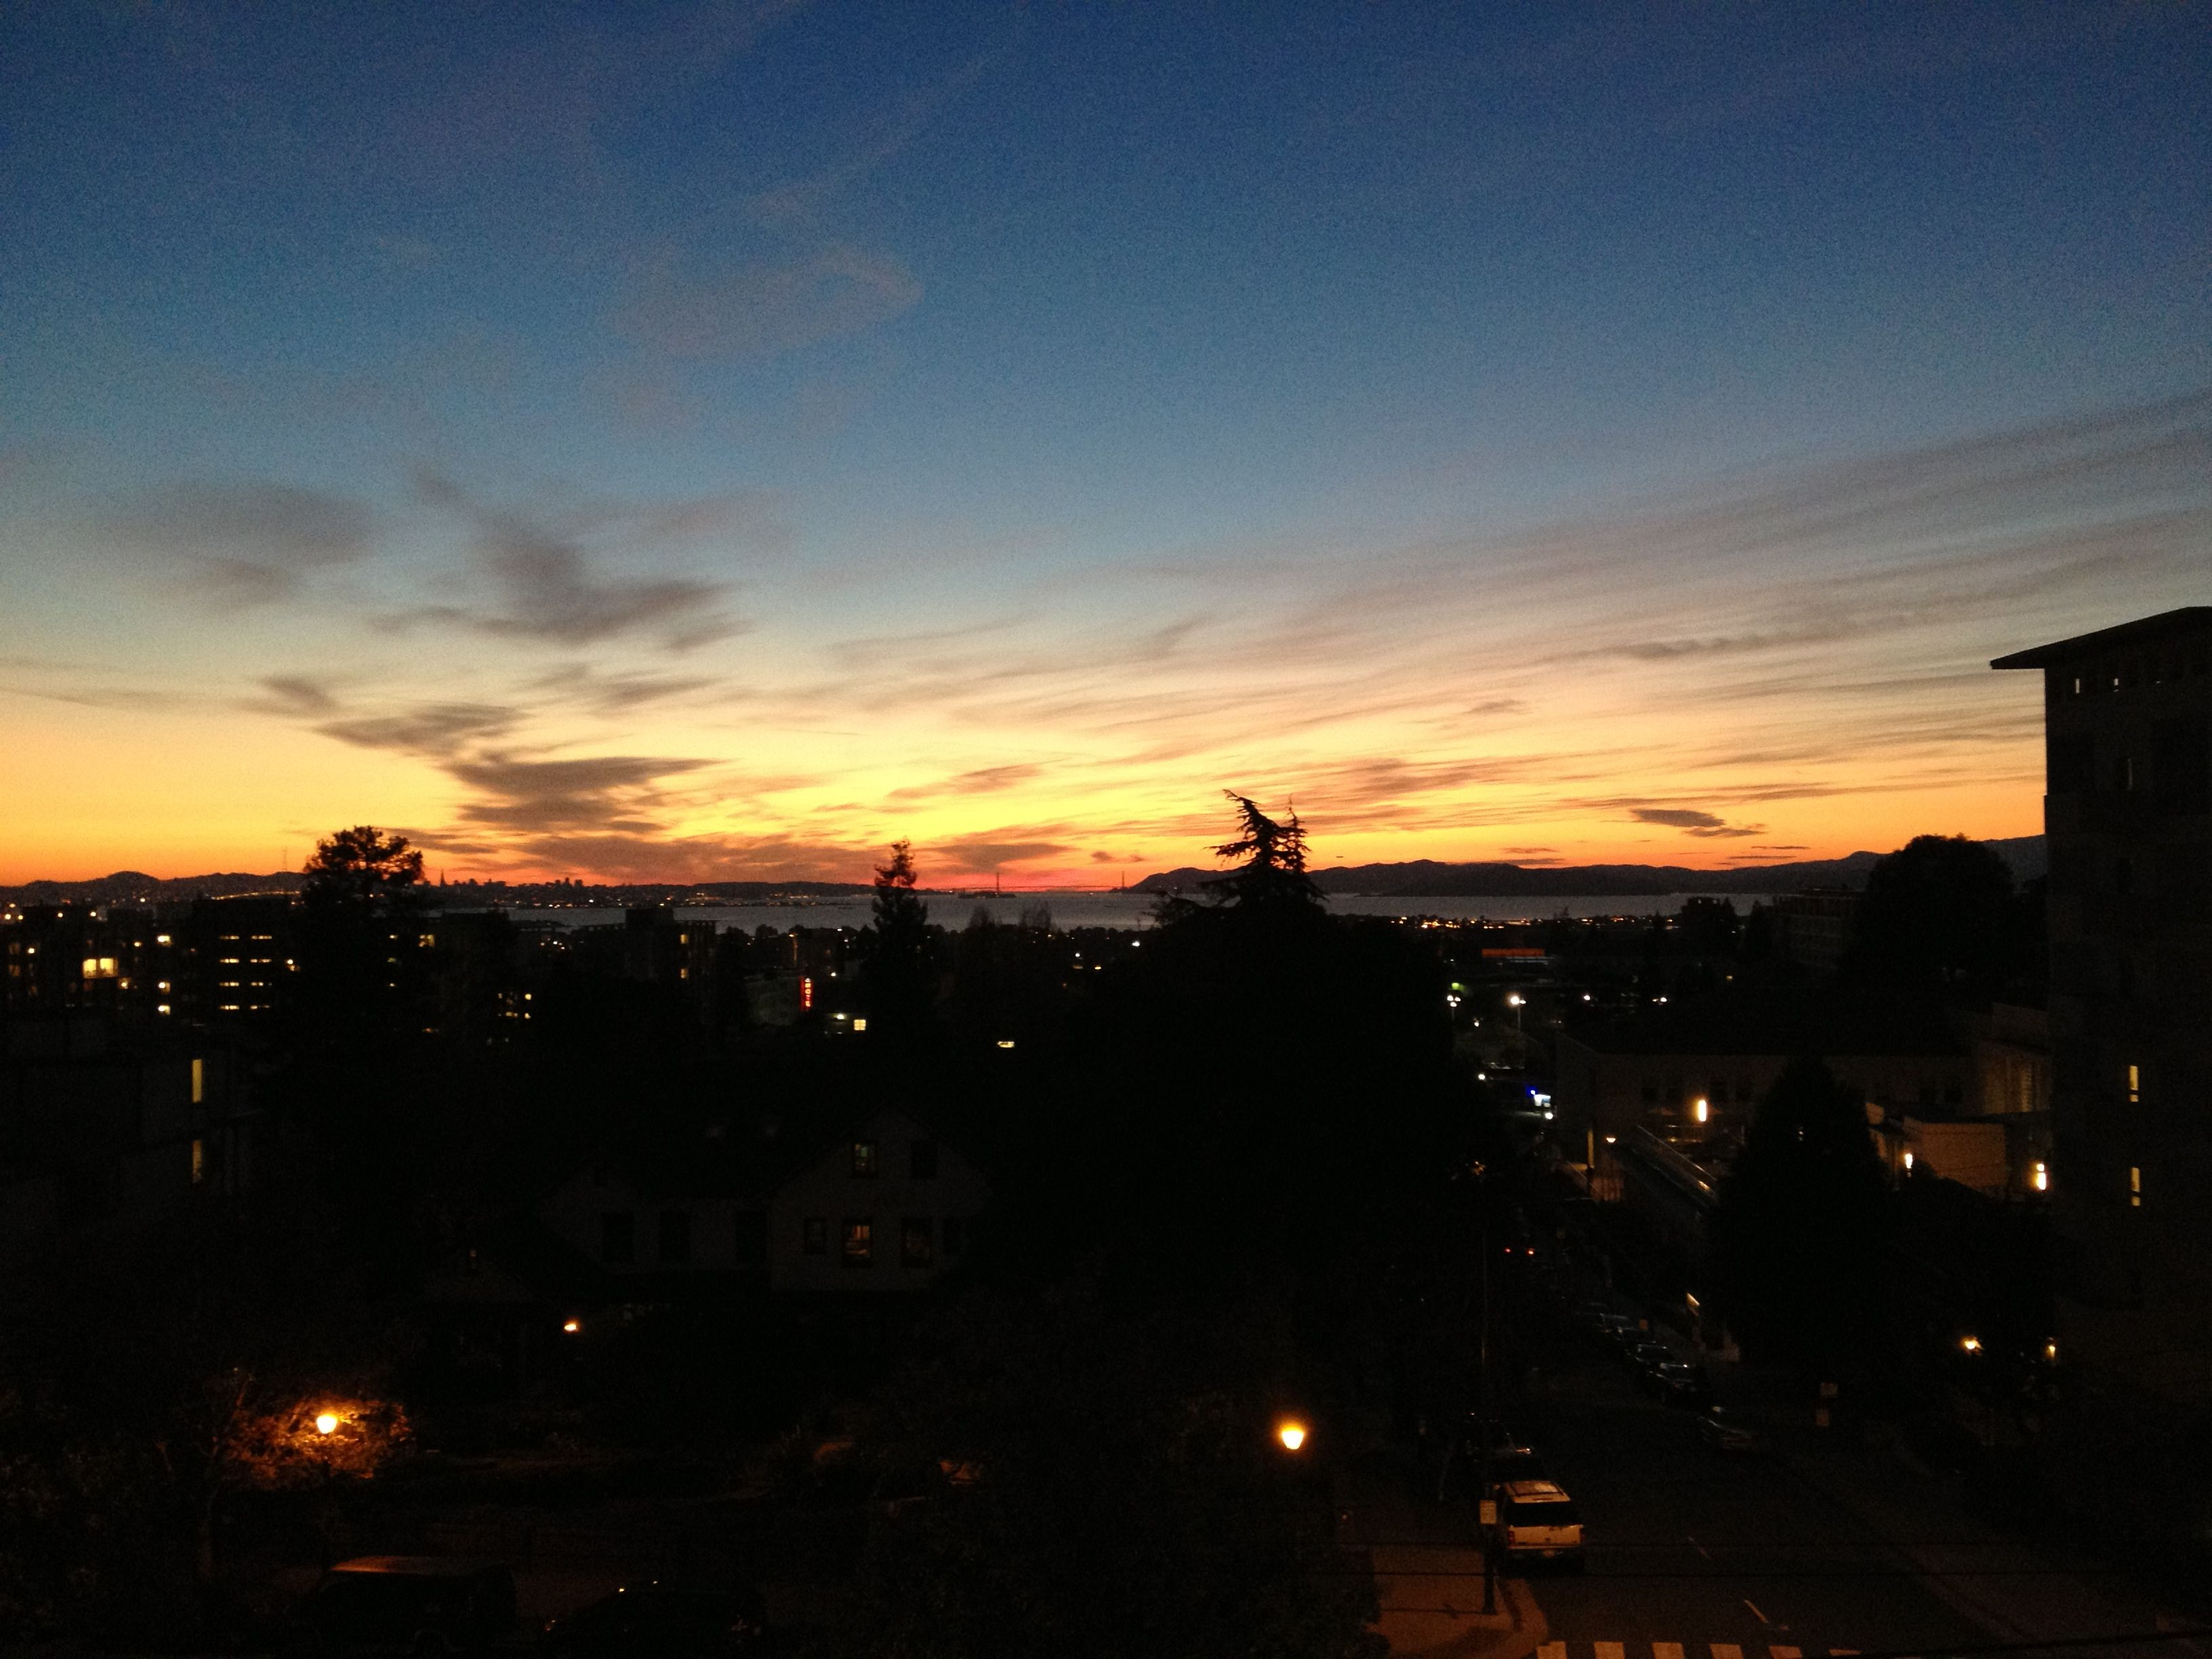 Sunset in Berkeley, CA!